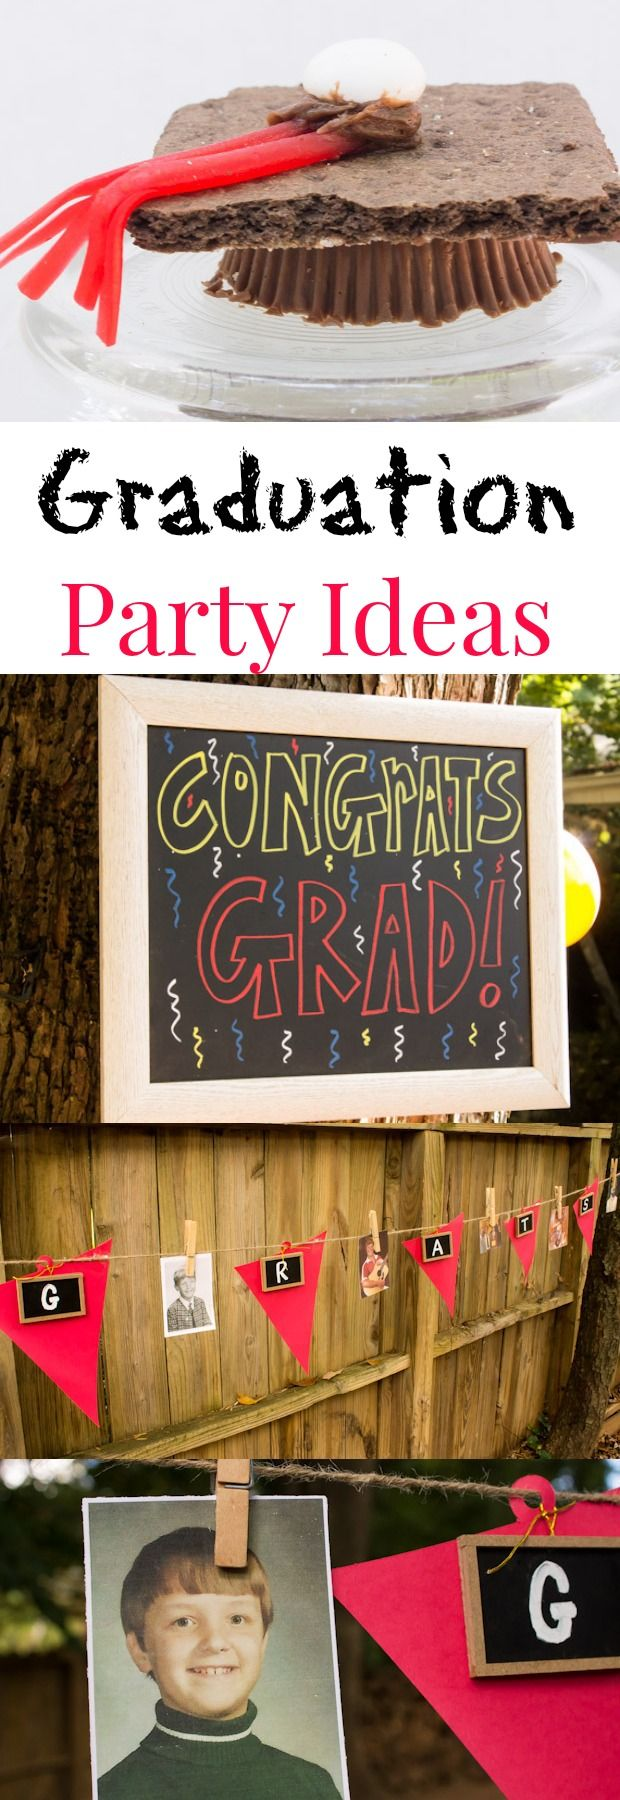 Graduation Party Ideas for All Ages from Marty's Musings